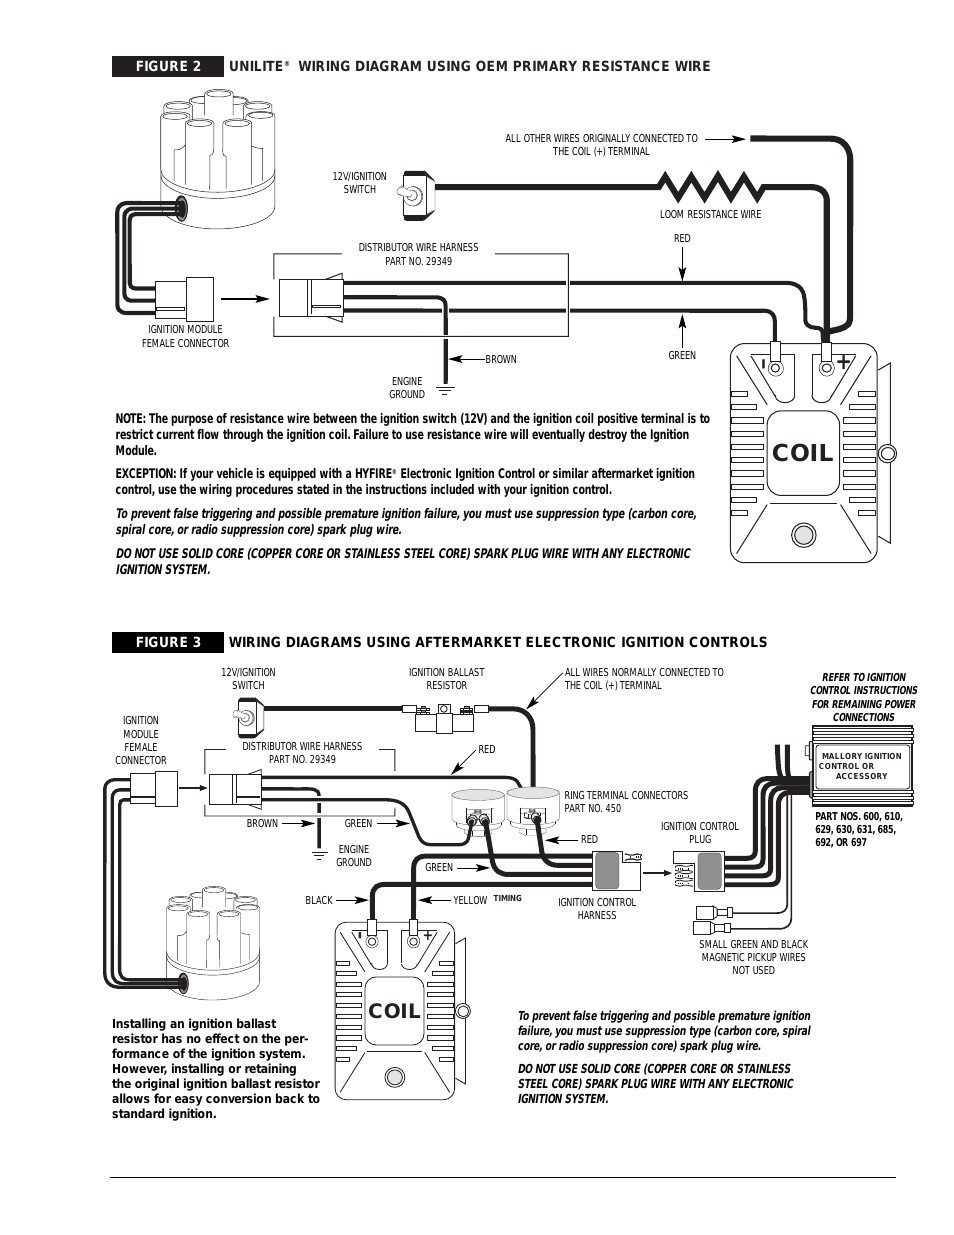 Mallory Coil Wiring Trusted Wiring Diagrams Mallory Magneto Wiring-Diagram  Mallory Magnetic Breakerless Distributor Wiring Diagram